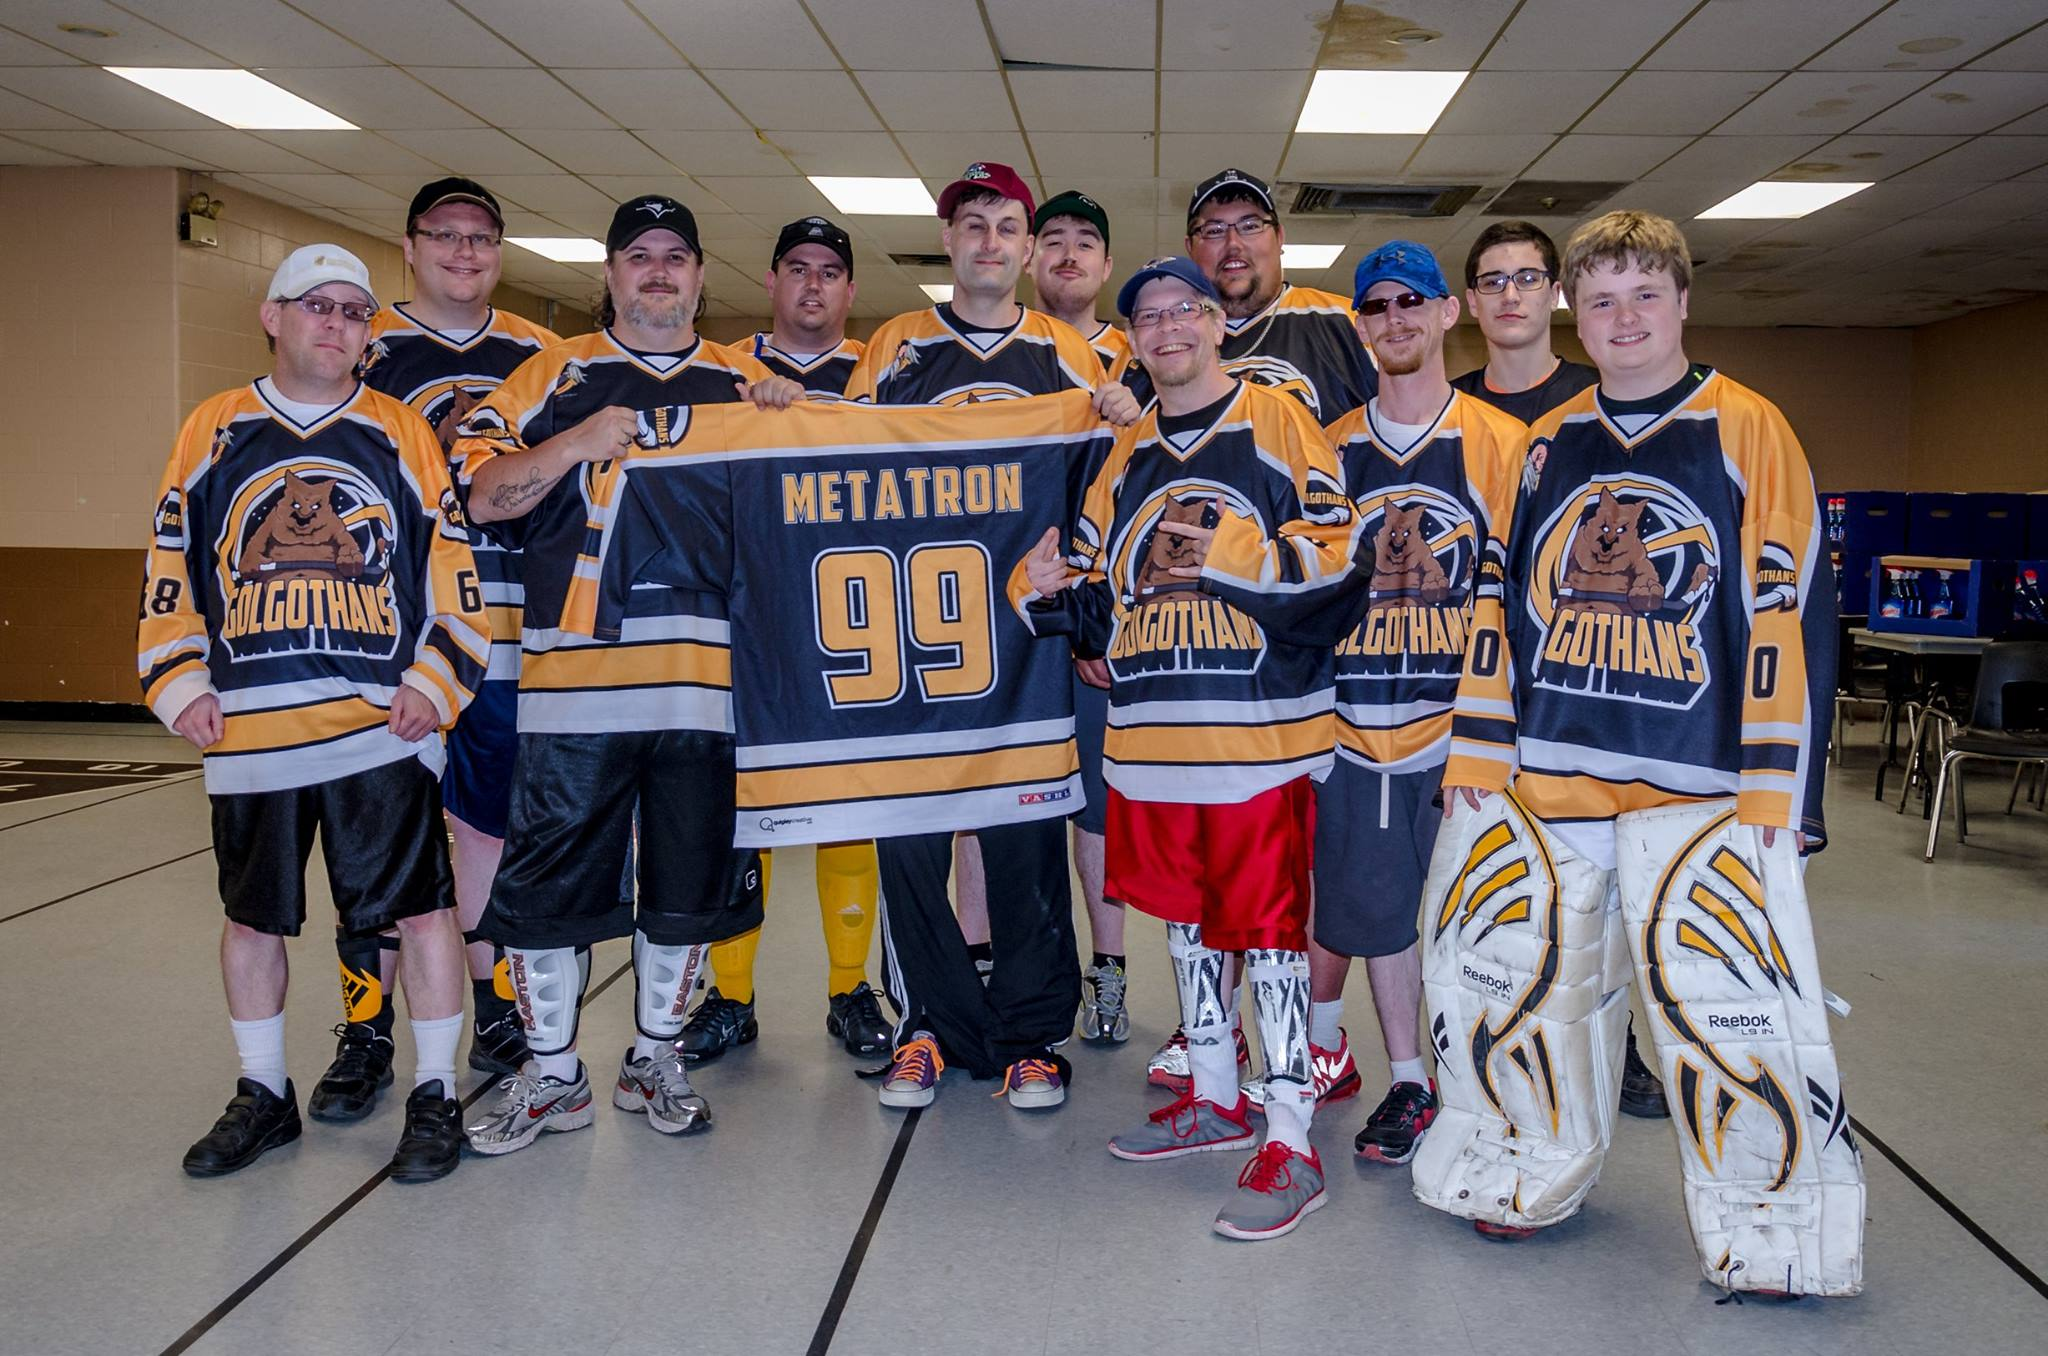 Golgothans with the Metatron Jersey in 2016